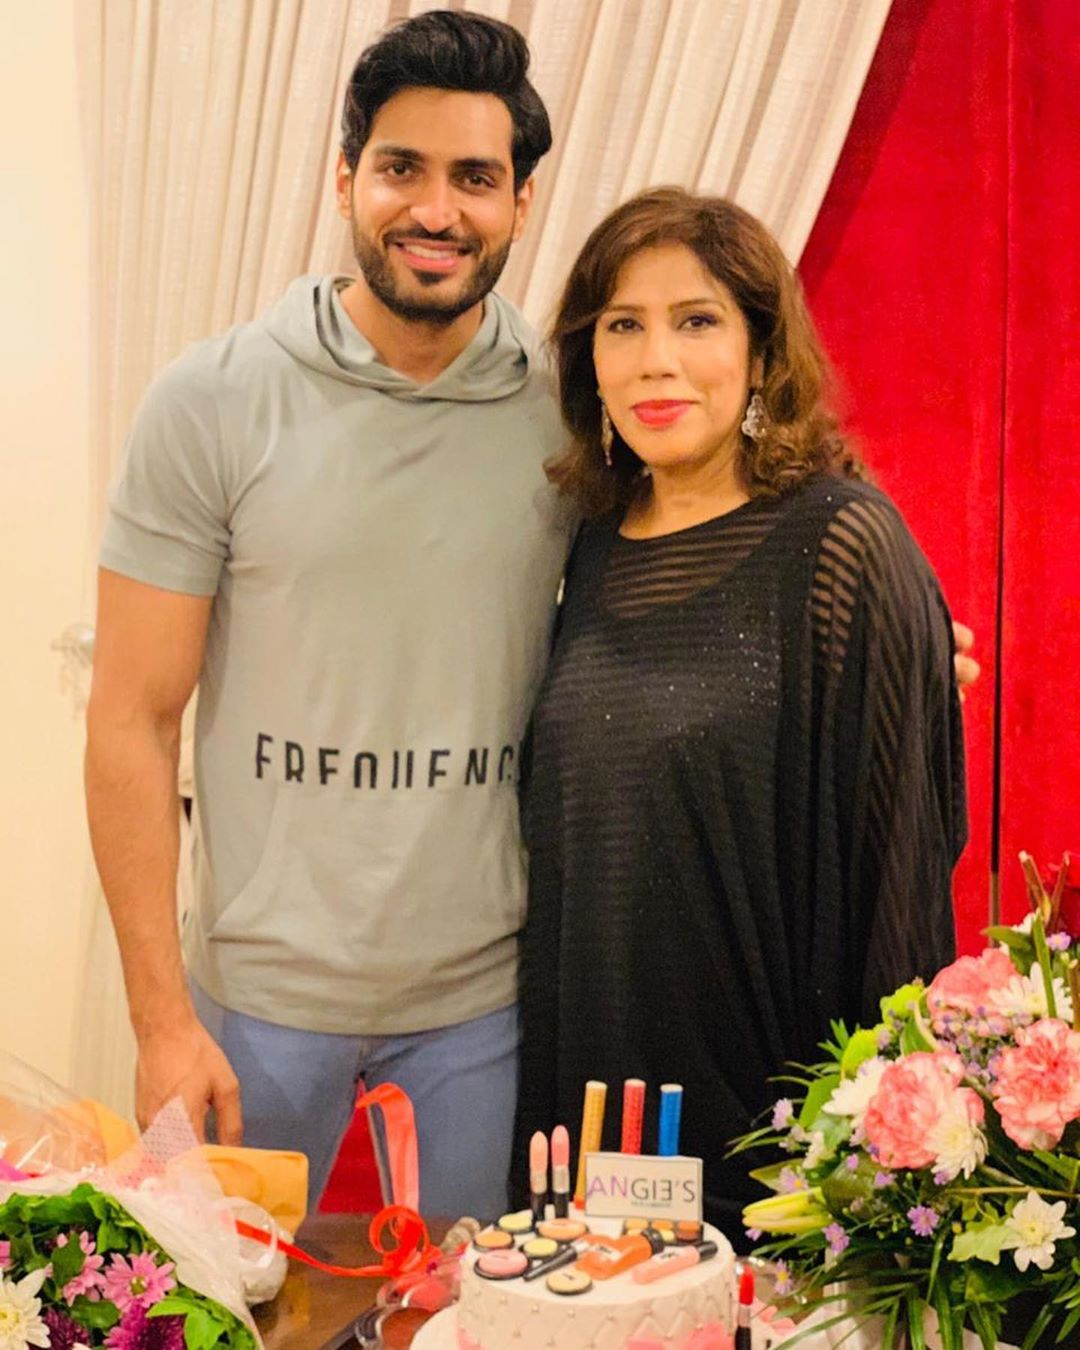 Sunita Marshal with Husband Hassan Ahmed Spotted at a Birthday Party